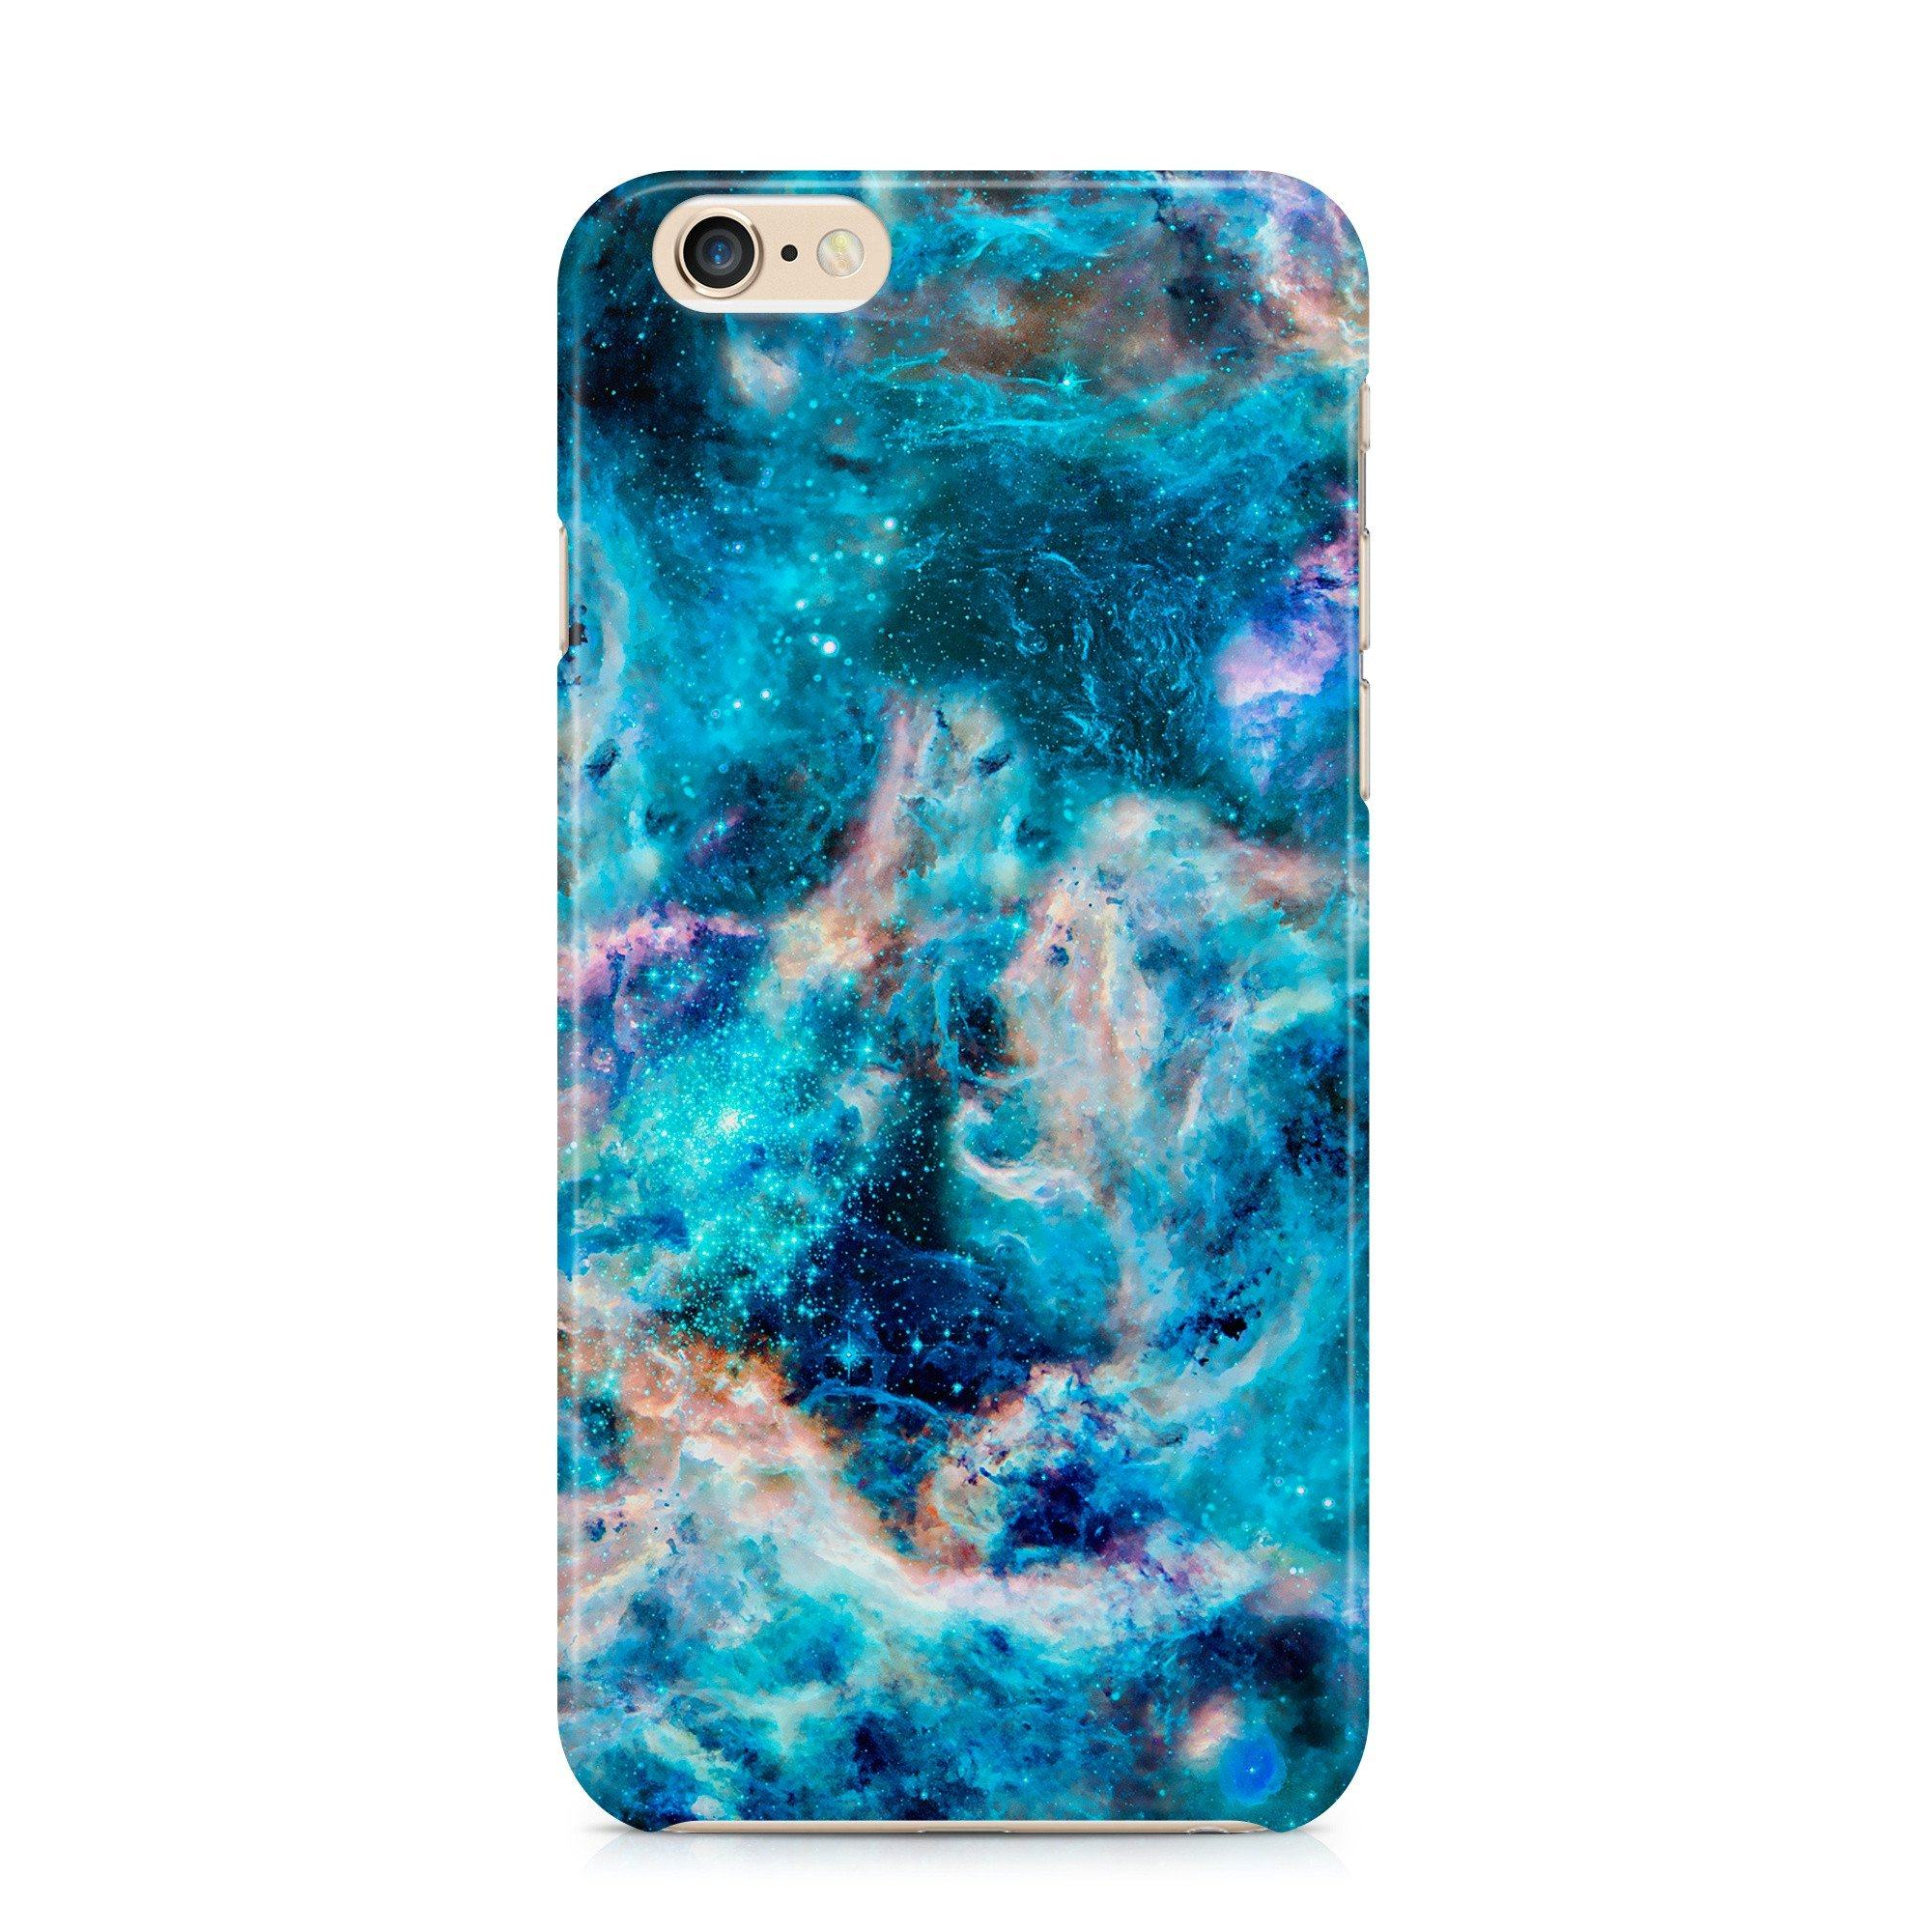 iPhone 6/6s hoesje - Blue Space